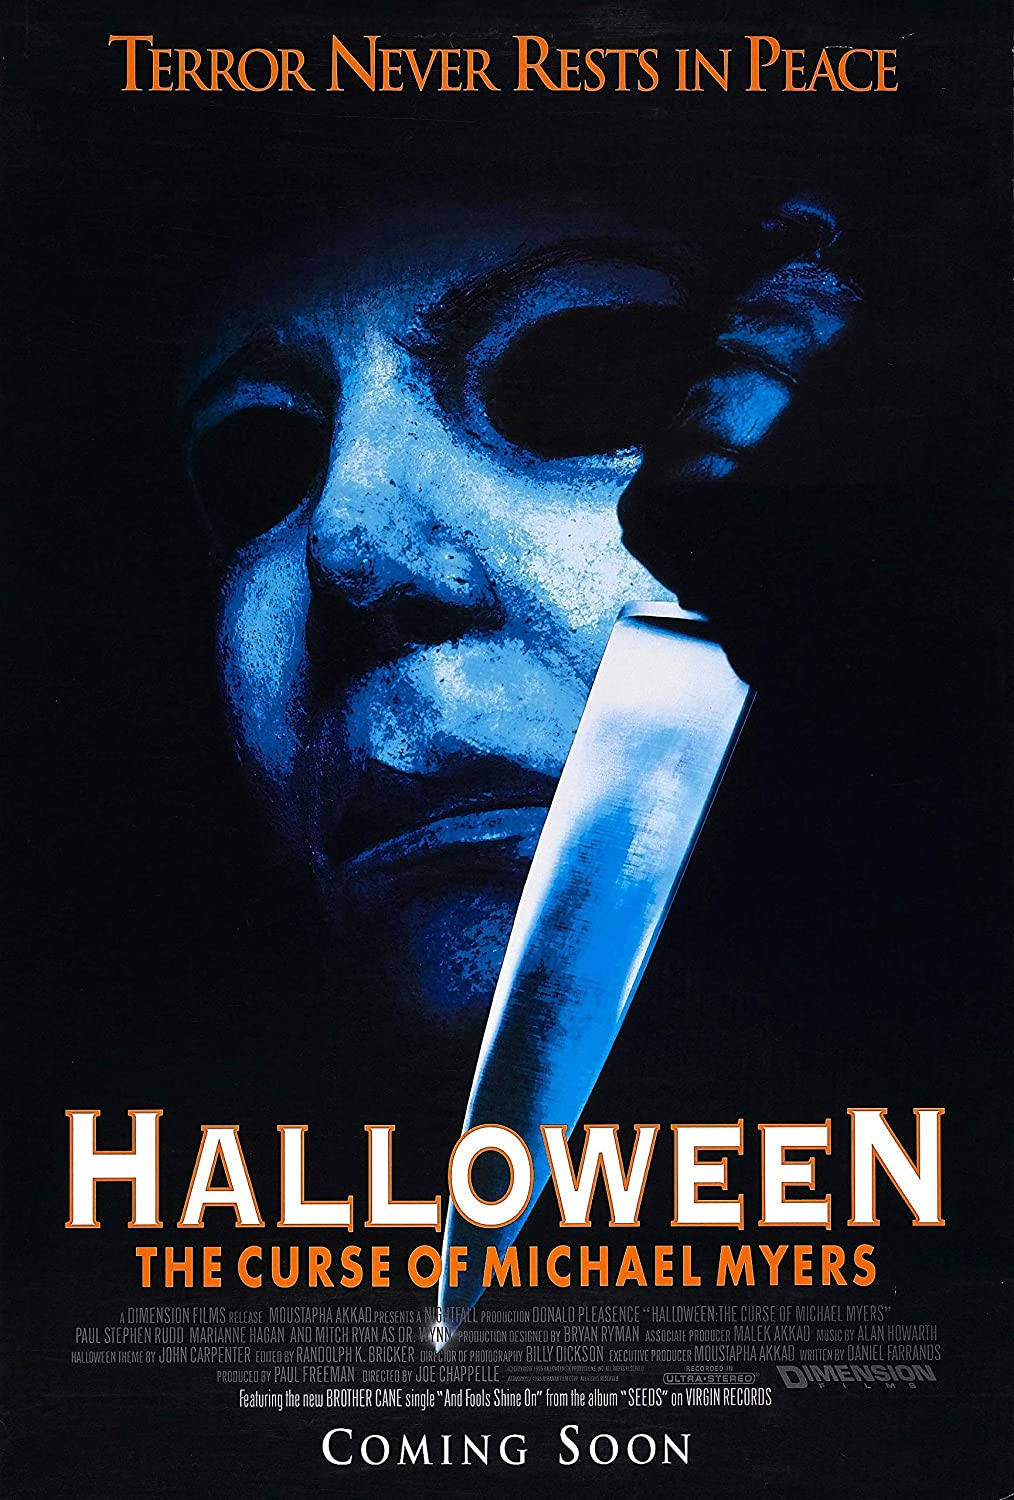 Halloween: The Curse of Michael Myers [AKA Halloween 6] (1995, dir. Joe Chapelle)